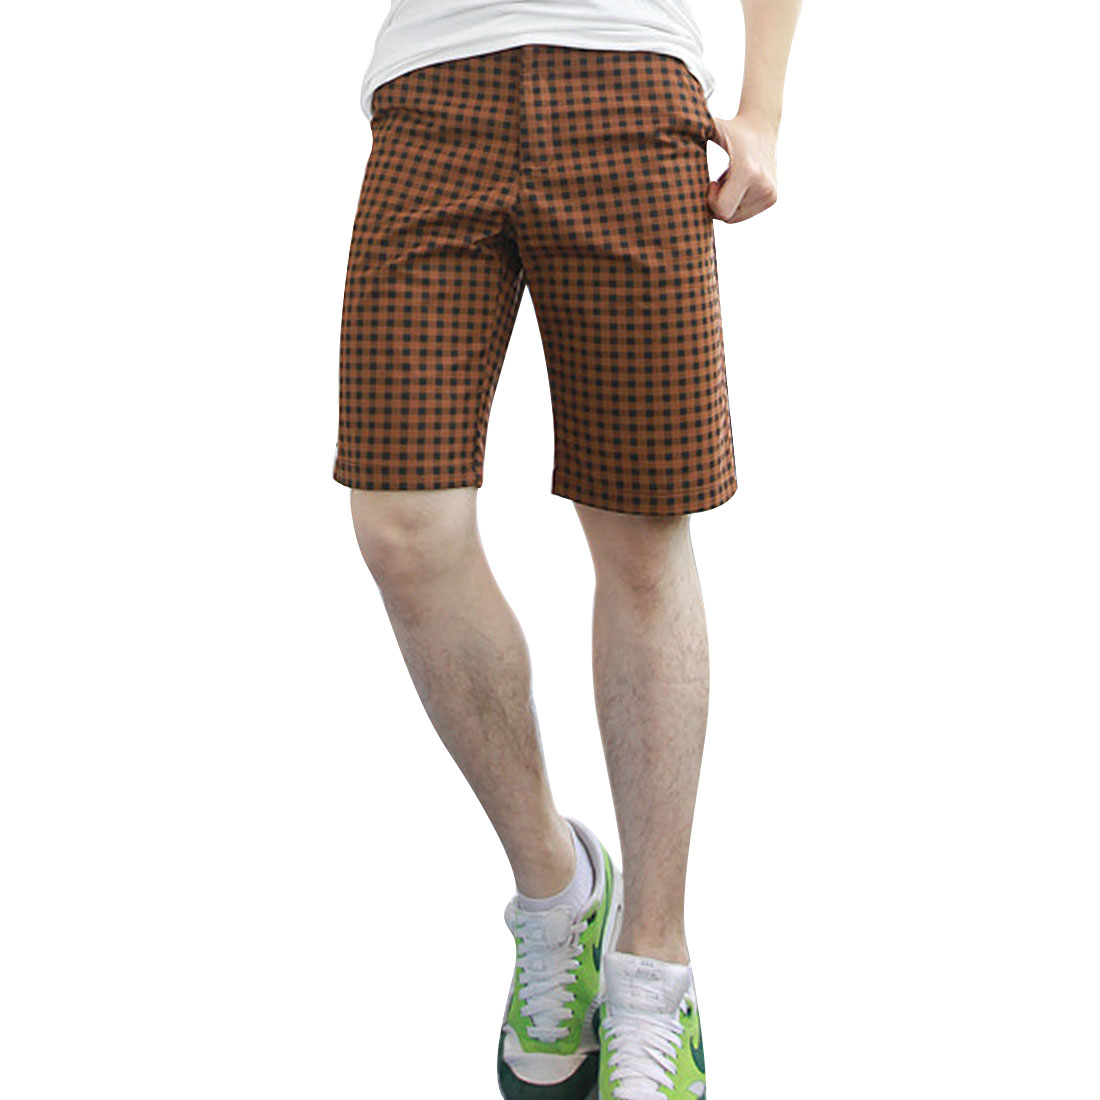 Man Check Pattern Hip Pockets Belt Loop Shorts Coffee W33